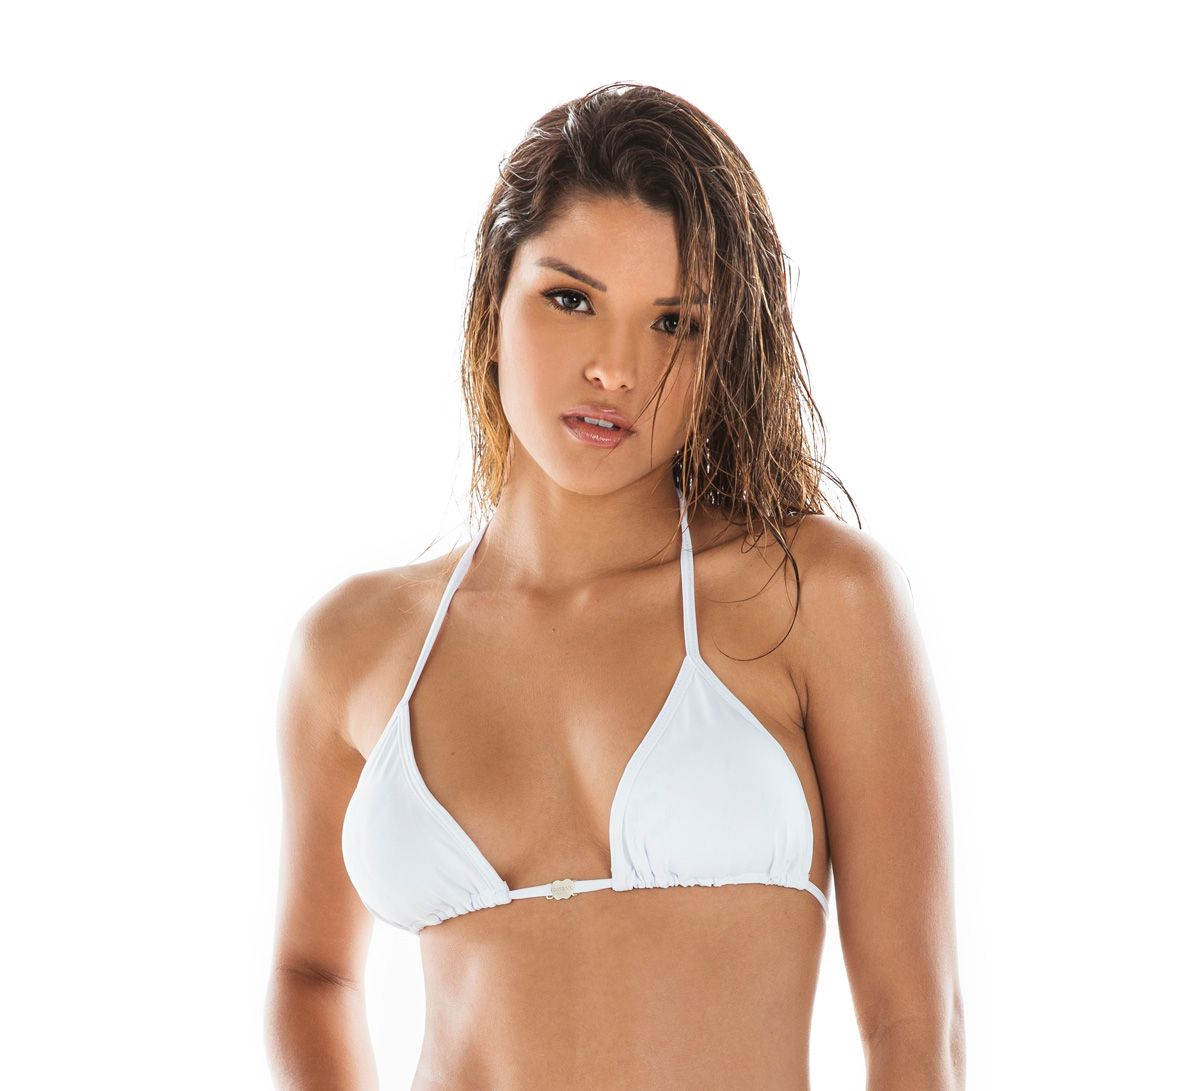 Top Cortina com Bojo Branco